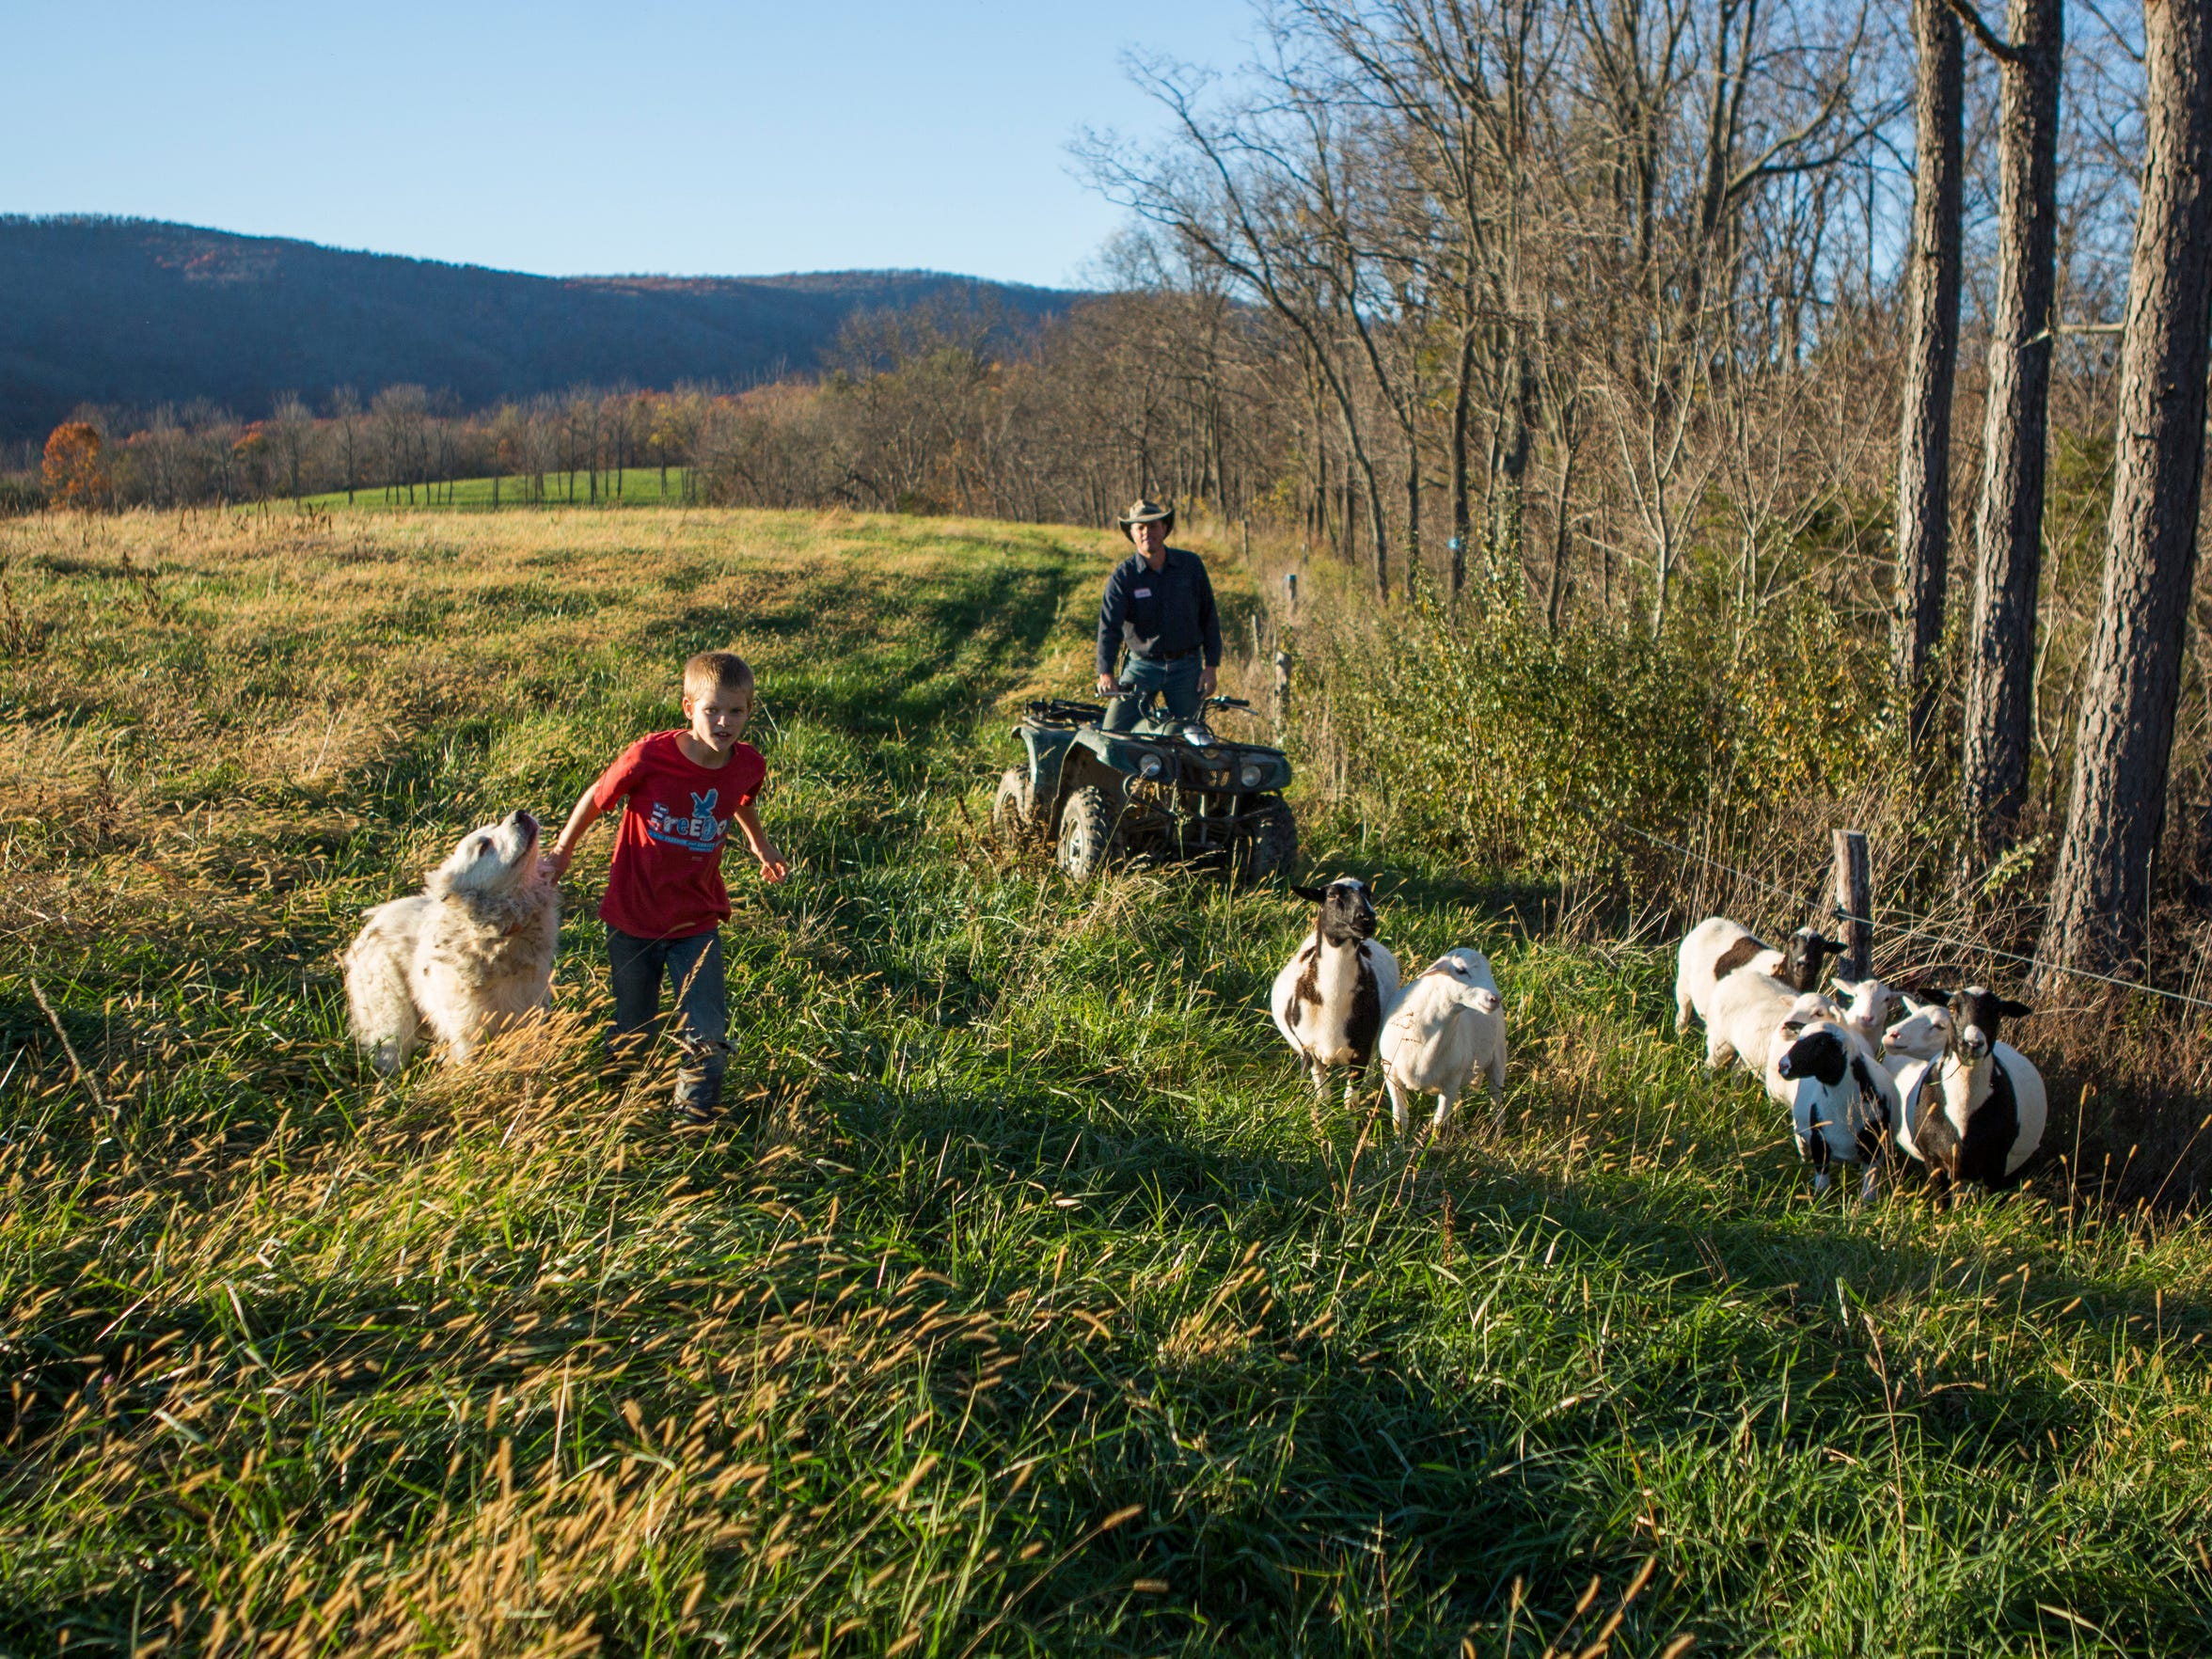 Andrew Salatin helps heard sheep back to their pen with his father, Daniel Salatin, after the animals escaped from their forest enclose at Polyface Farms in Swoope on Oct. 30, 2015.